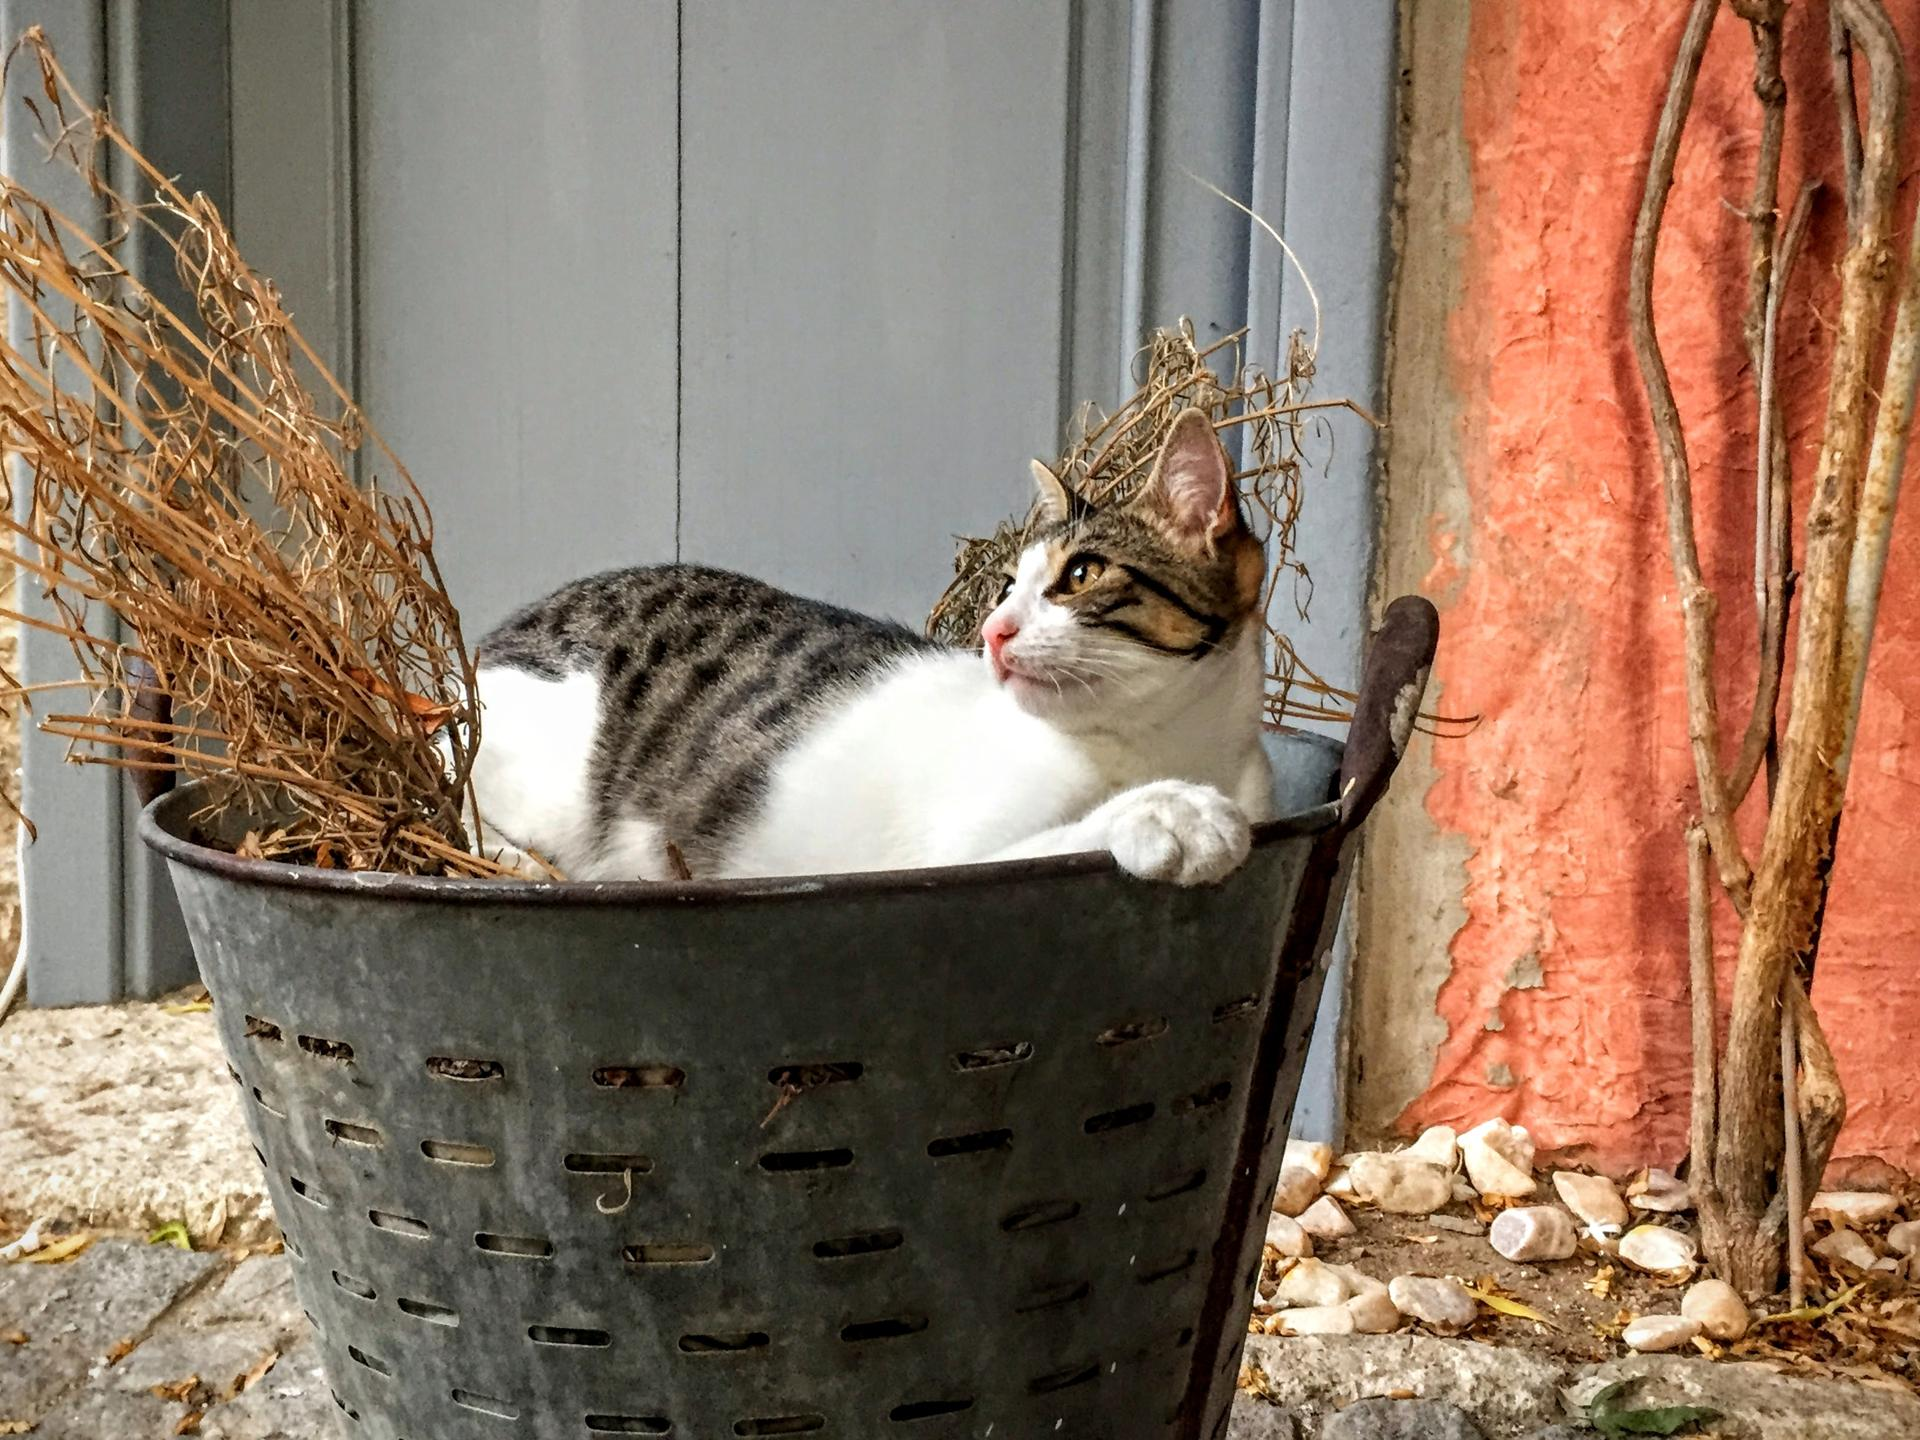 03muther Credit: Christopher Muther, Globe Staff Alcati cat: A cat in Alacati, Turkey, makes a bed out of a potted dead plant.